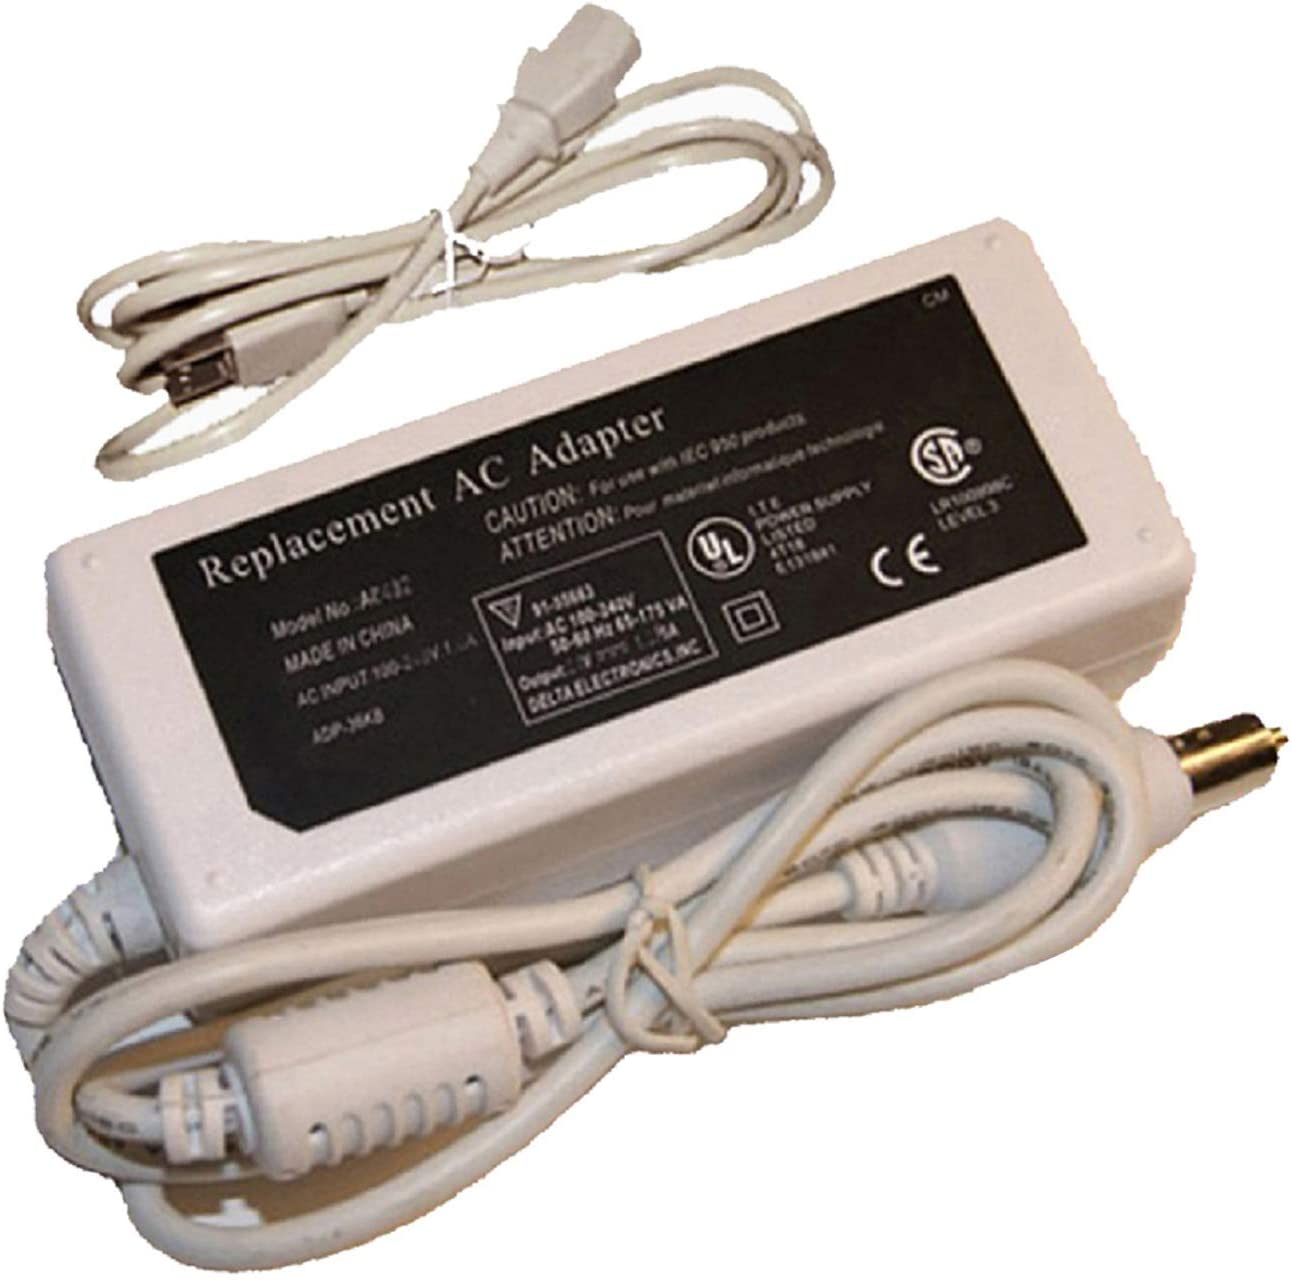 UpBright New AC/DC Adapter for Apple Mac iBook 700 800 900 PowerBook G4 A1104 Mac A1106 A1005 A1036 A1021 M9676LL/A M9677LL/A #503-23 A1085 A1046 Laptop 24V Power Supply Cord Battery Charger PSU